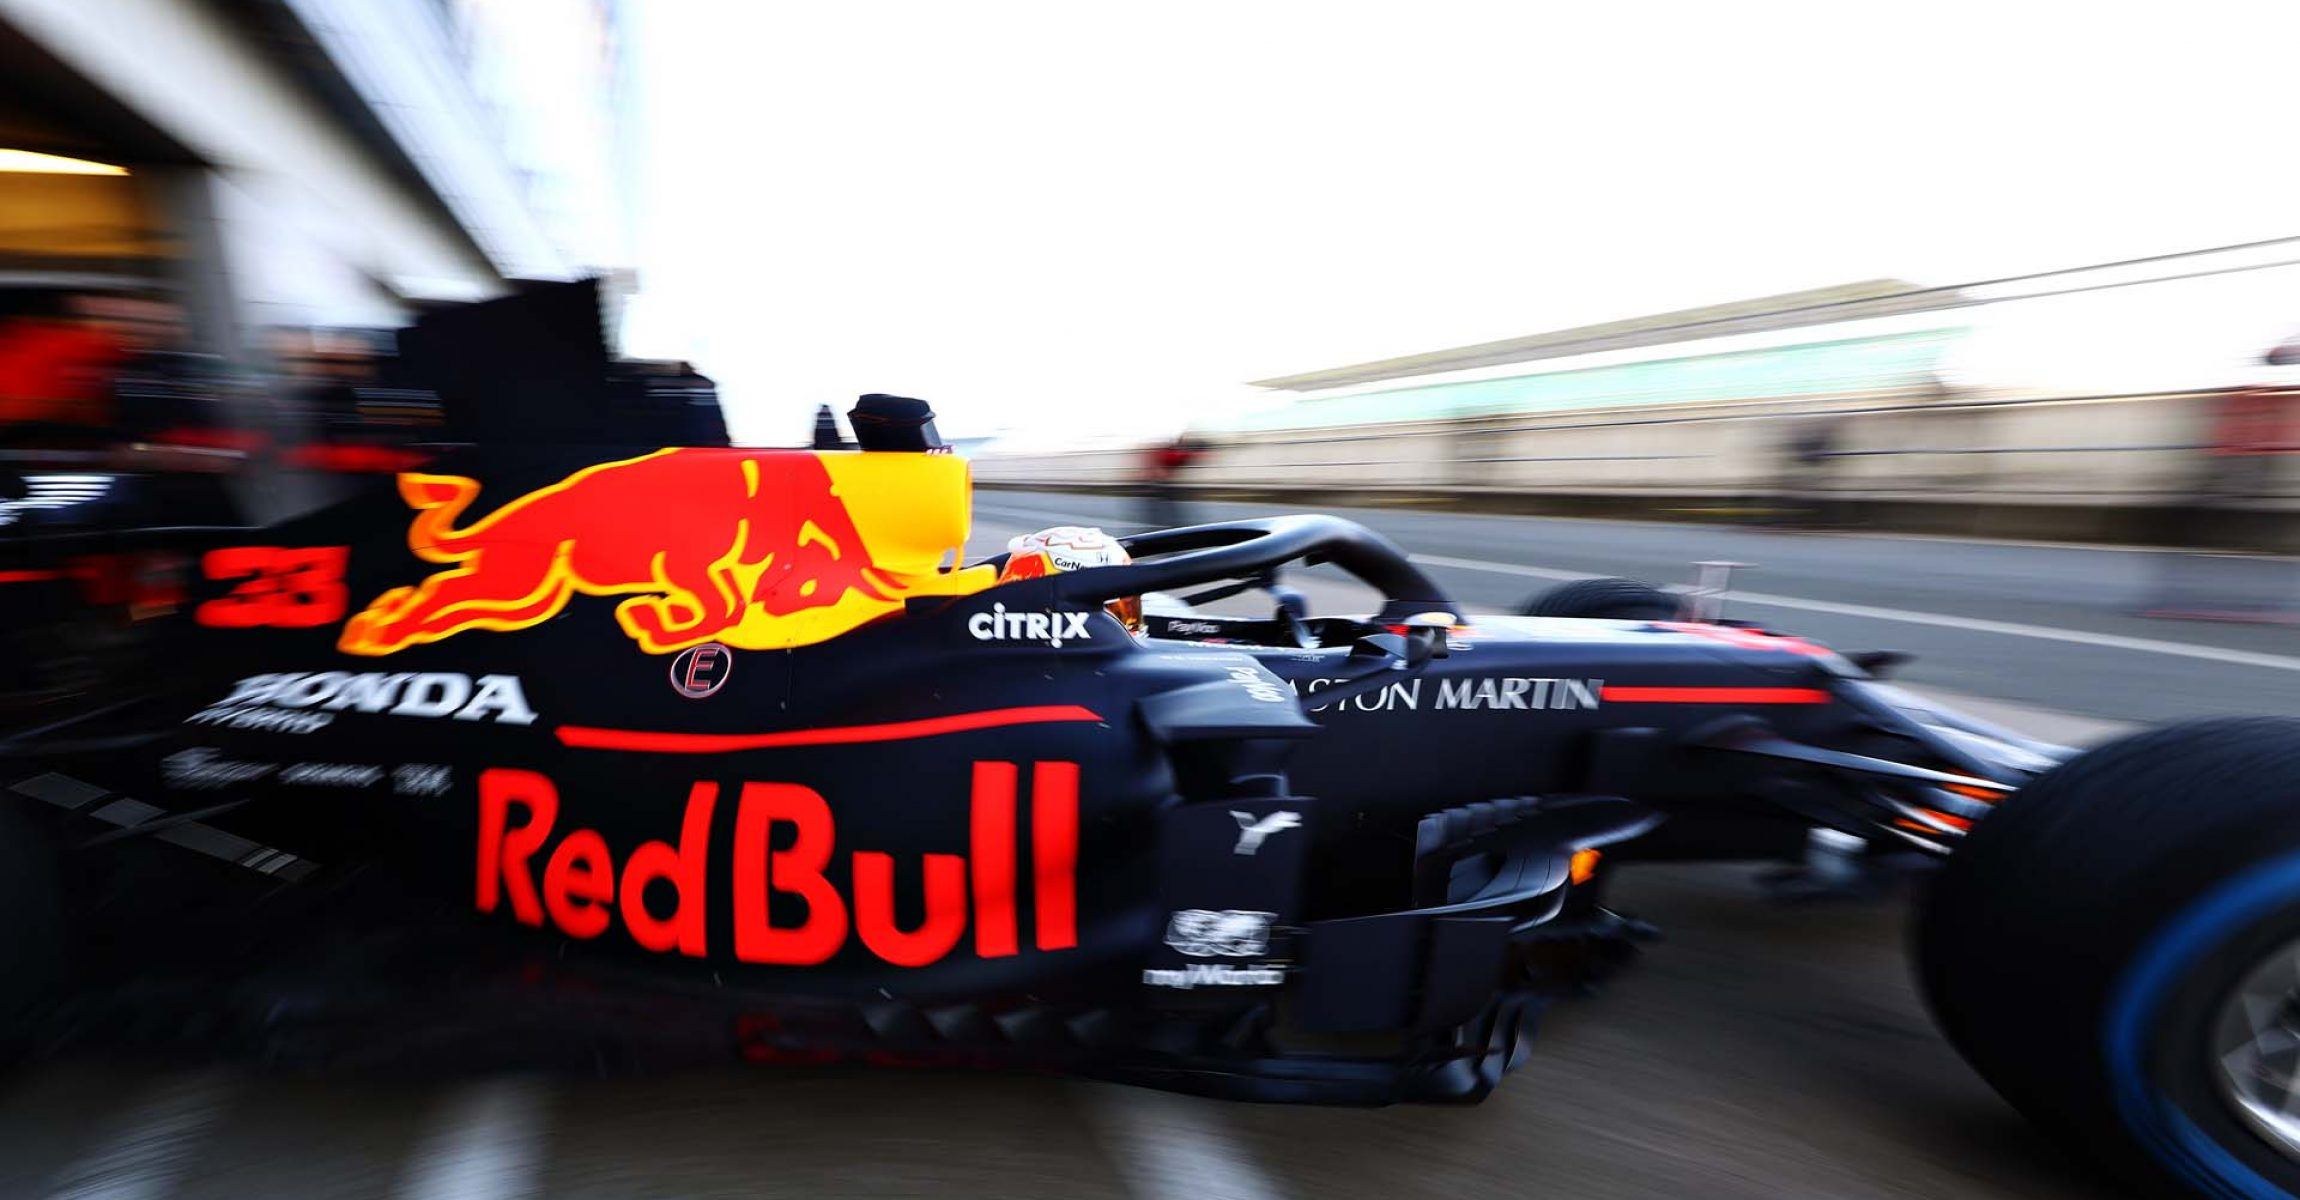 NORTHAMPTON, ENGLAND - FEBRUARY 12: Max Verstappen of the Netherlands driving the (33) Aston Martin Red Bull Racing RB16 leaves the garage during the Red Bull Racing RB16 launch at Silverstone Circuit on February 12, 2020 in Northampton, England. (Photo by Mark Thompson/Getty Images) // Getty Images / Red Bull Content Pool // AP-233AVCGC91W11 // Usage for editorial use only //